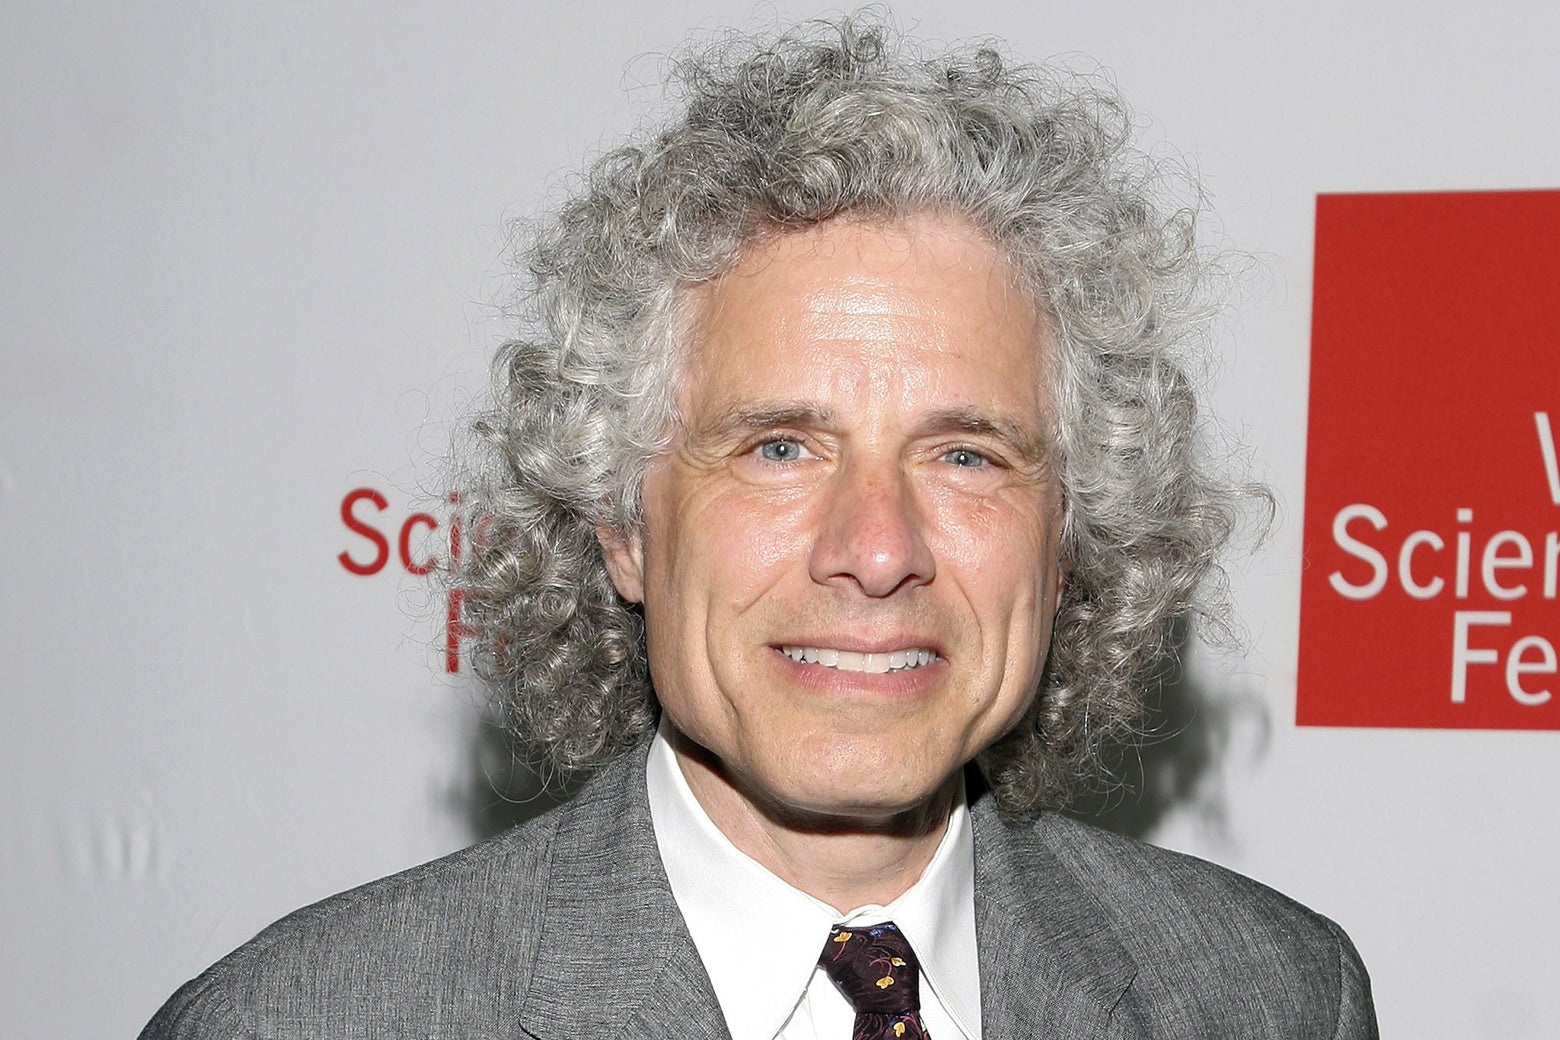 Steven Pinker attends the 2011 World Science Festival opening night gala at Alice Tully Hall on June 1, 2011 in New York City.